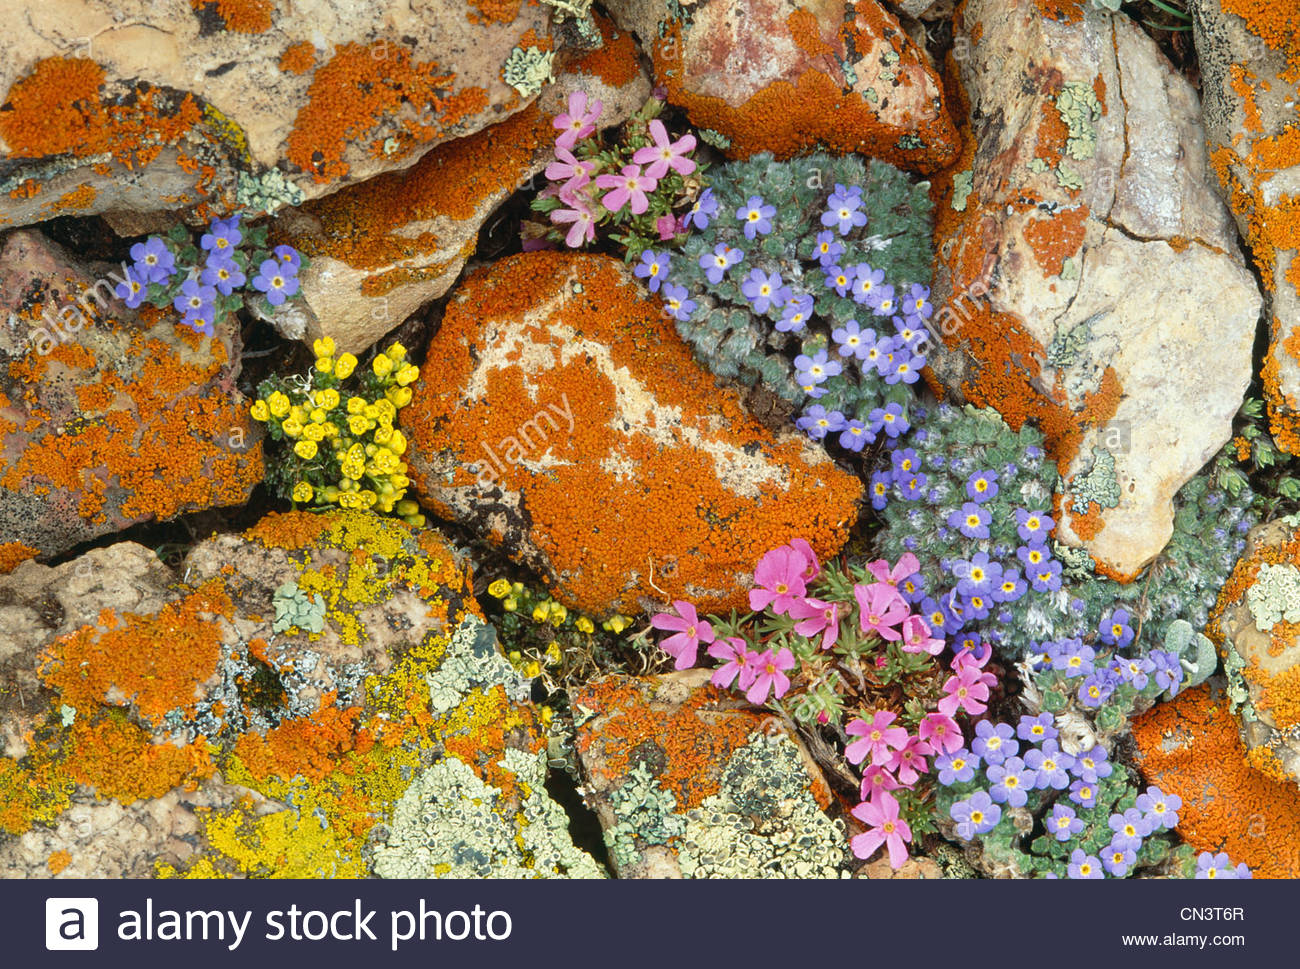 Alpine flowers, Yellowstone National Park, Wyoming - Stock Image